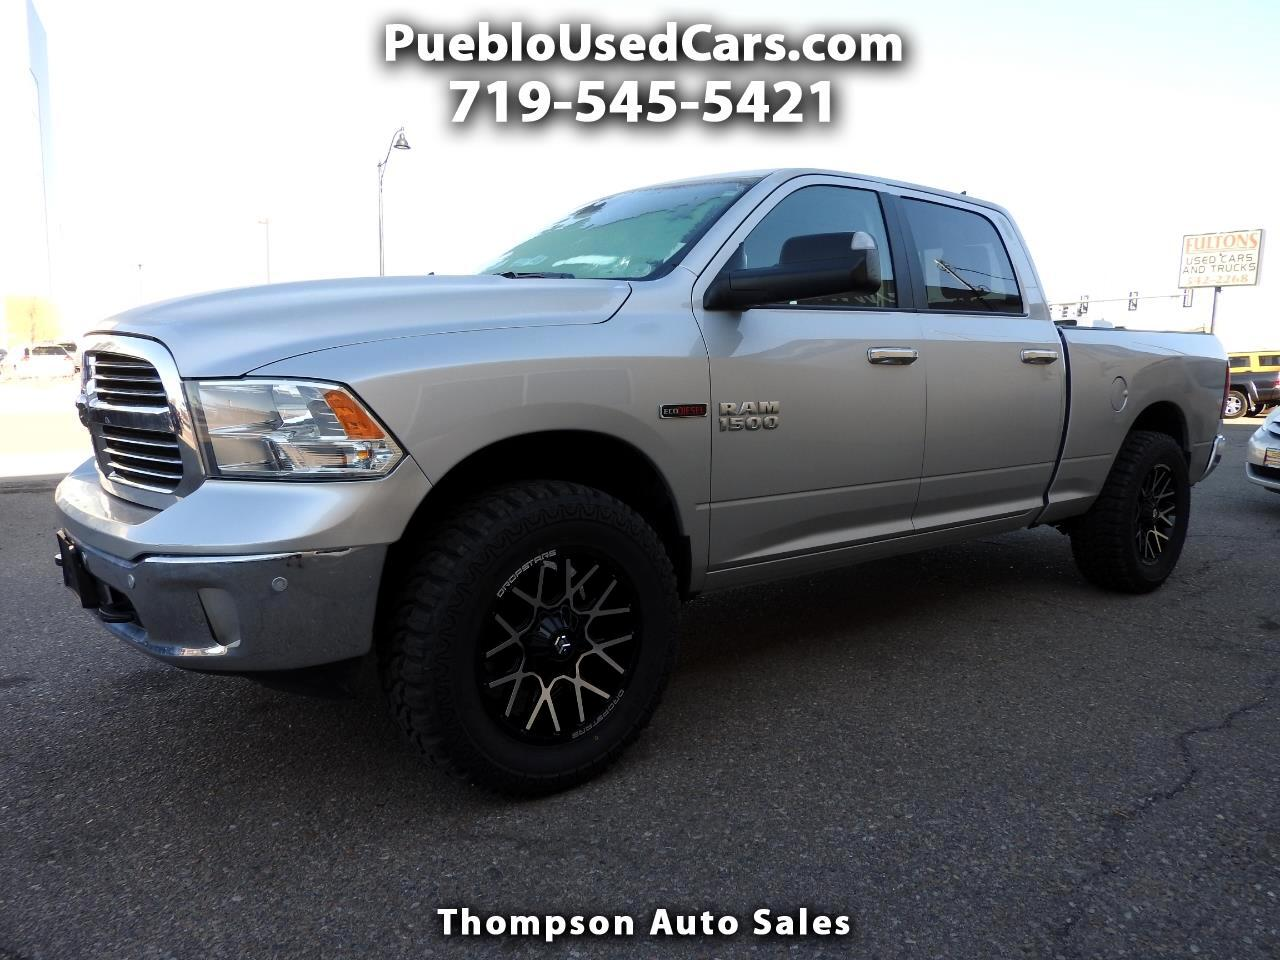 2016 RAM 1500 Big Horn Crew Cab 4WD with Leather